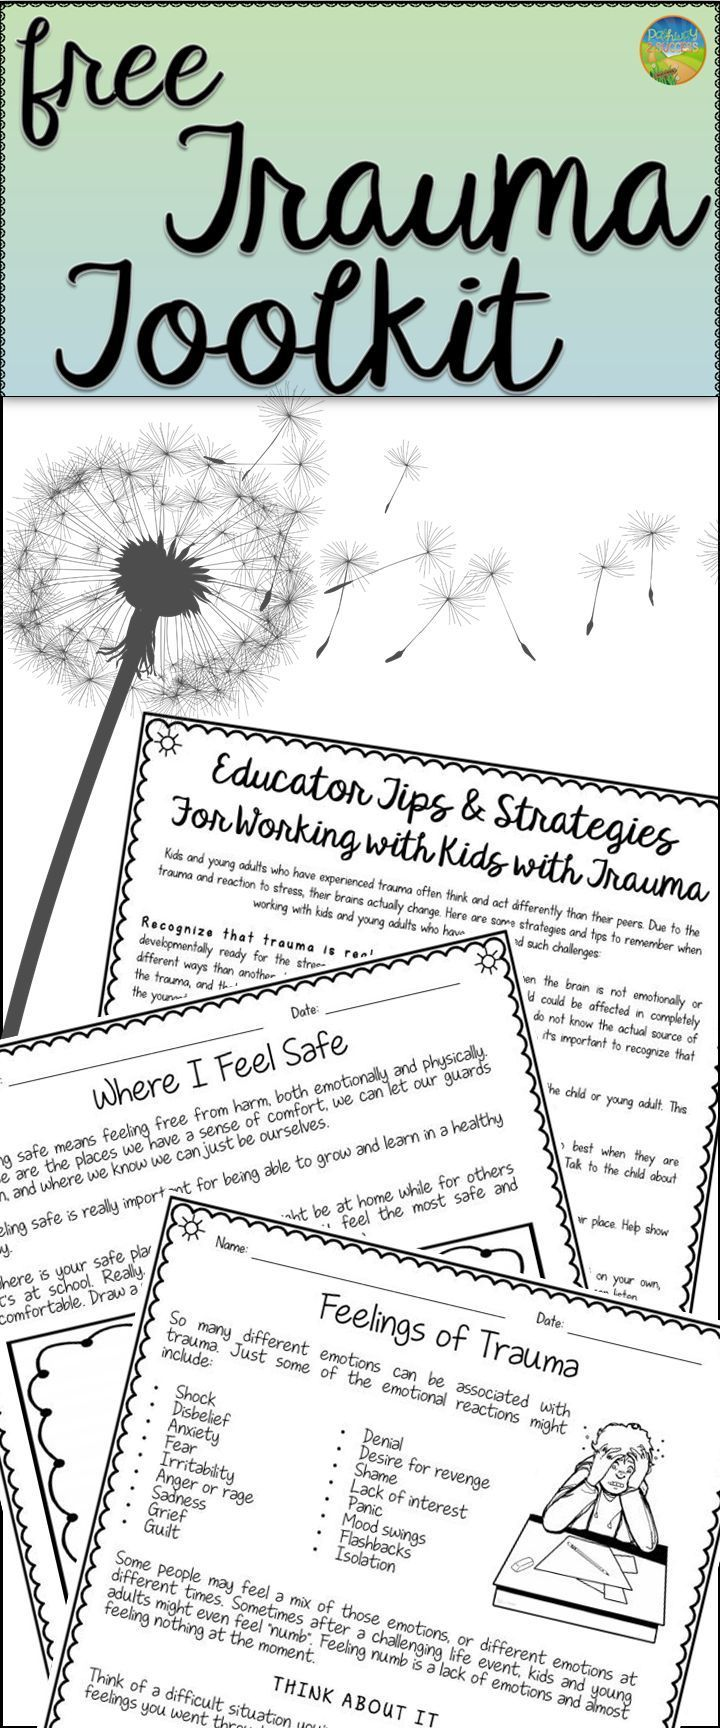 worksheet Free Therapy Worksheets free trauma worksheets and teacher handouts great counseling tool for kids with challenging backgrounds high